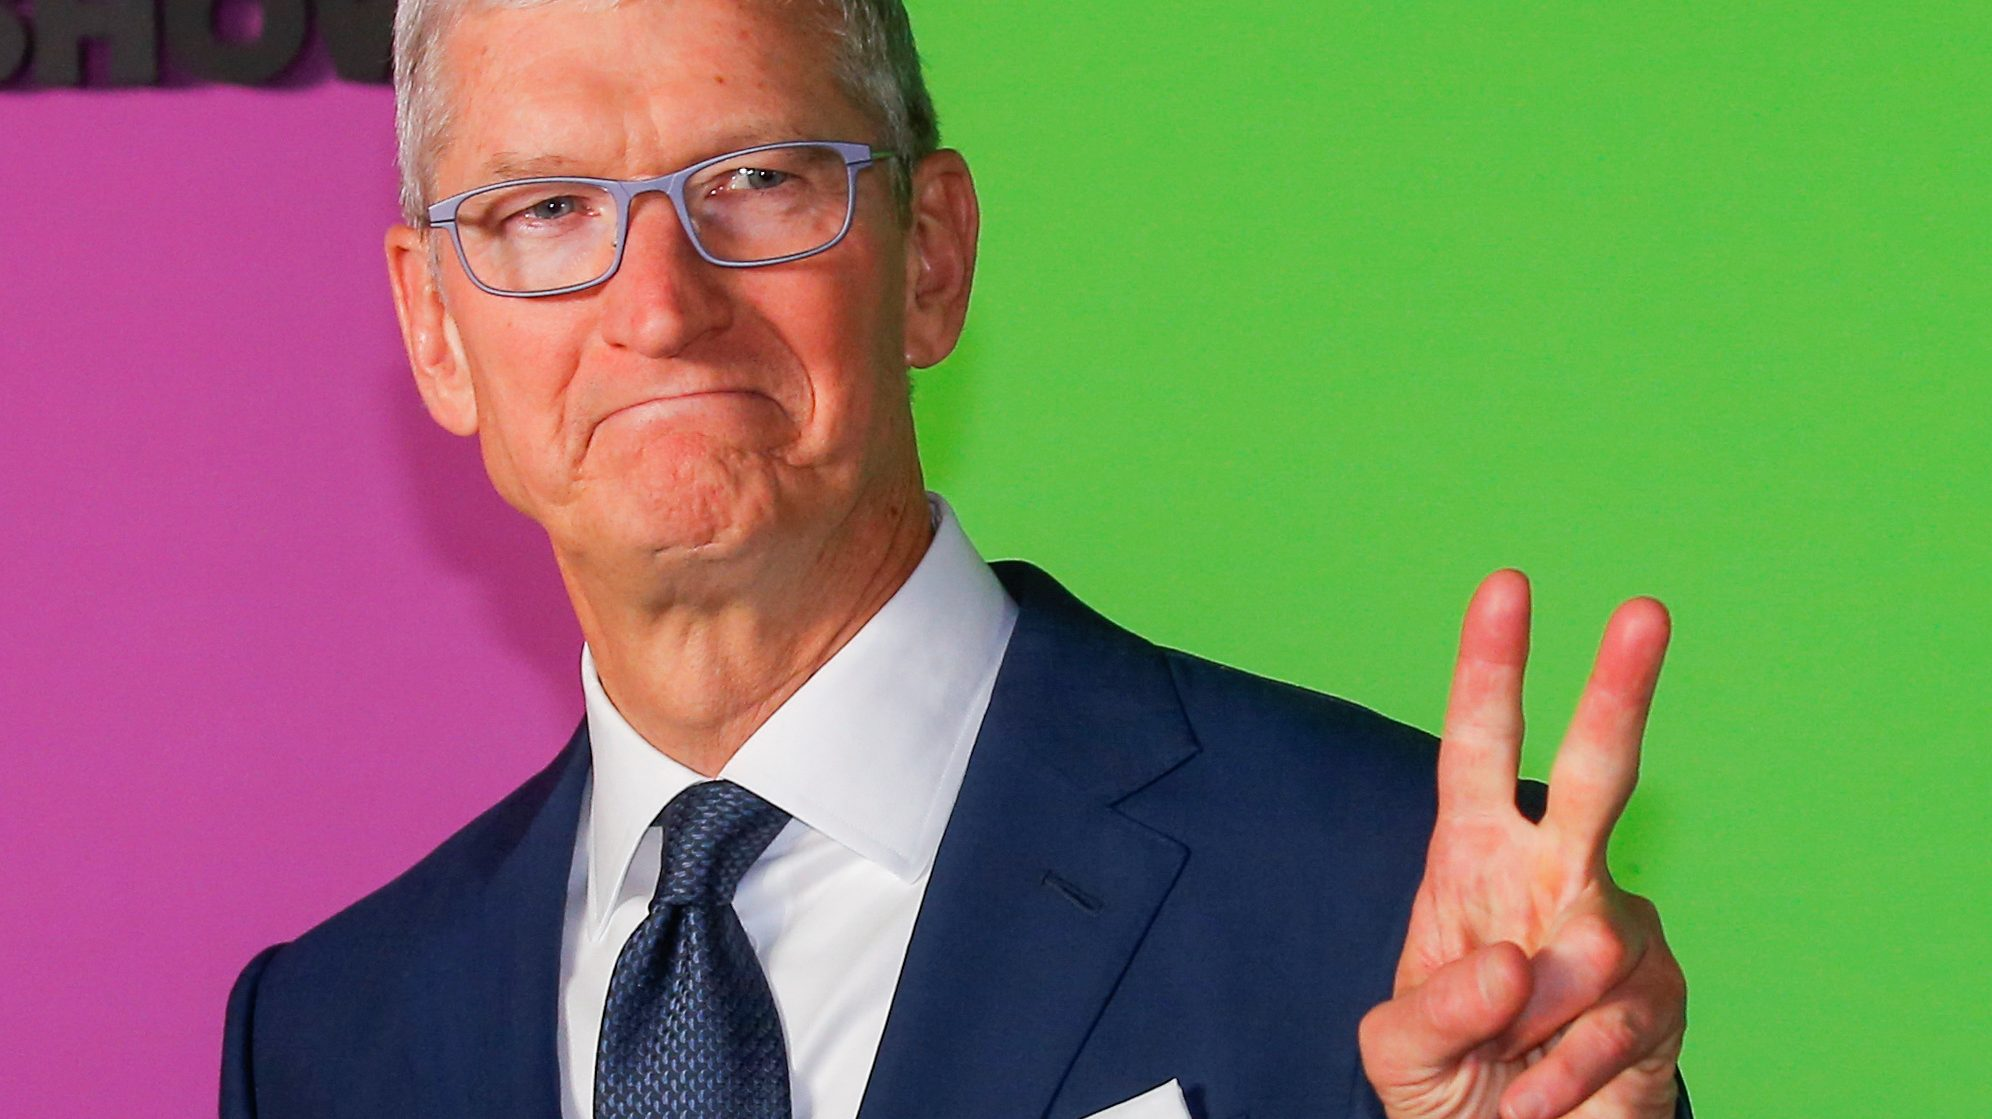 The Apple employees' complaint letter is also a road map for reopening offices